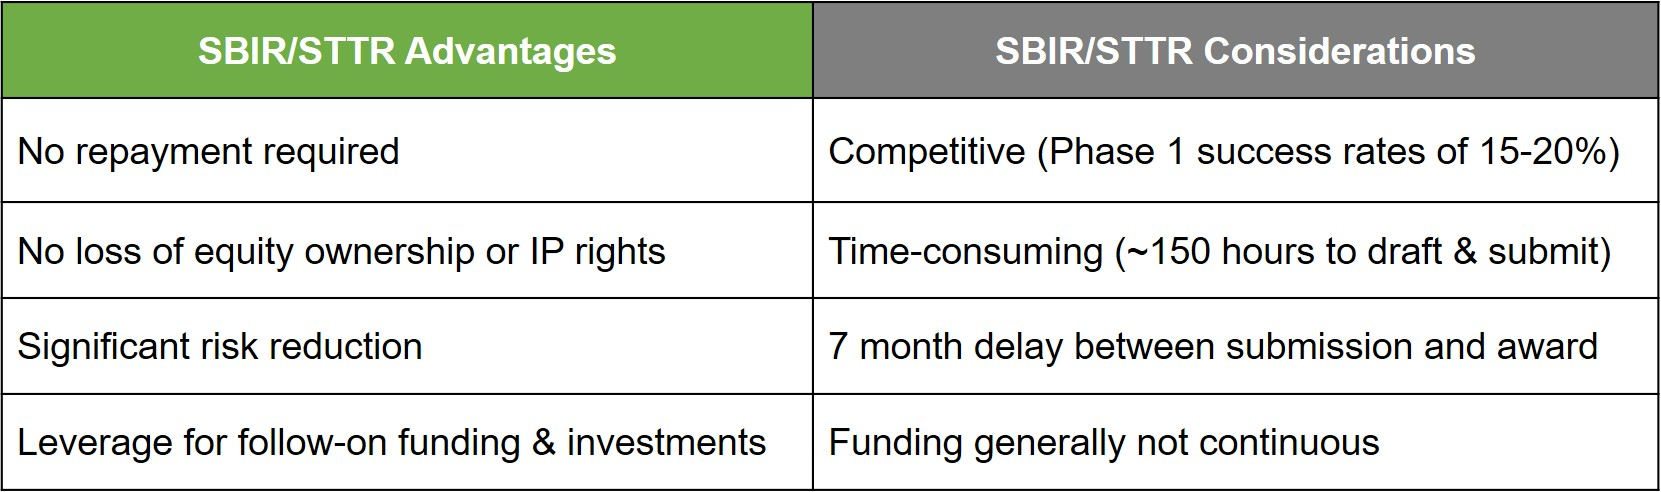 SBIR.STTR AdvantagesandConsiderations